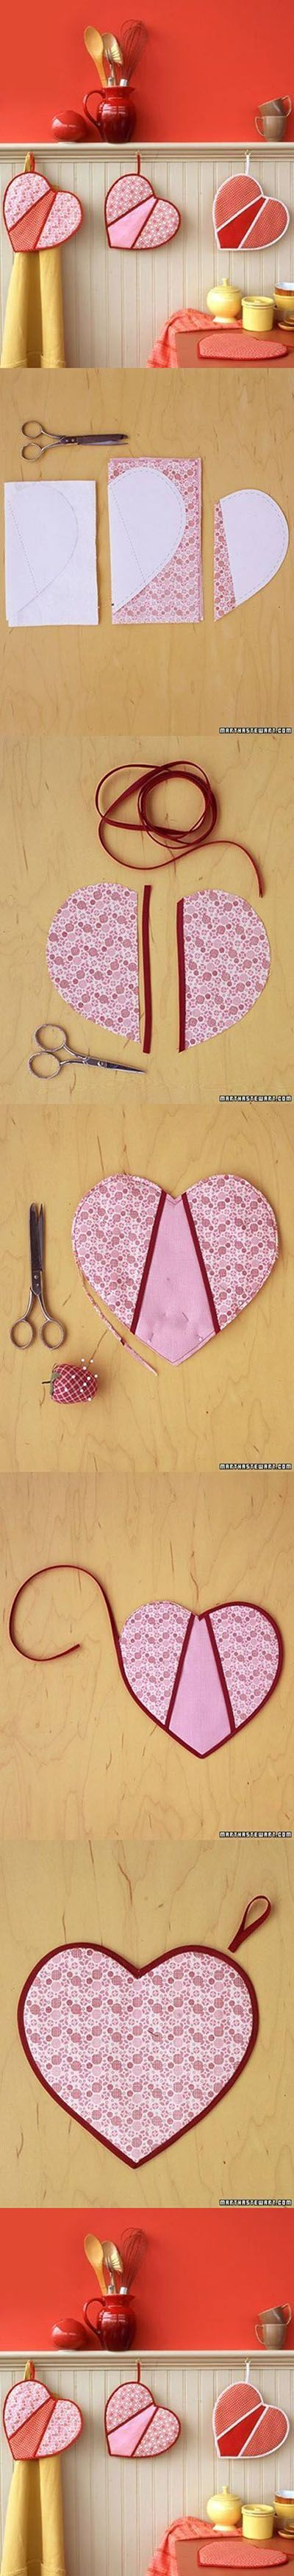 Photo of How to Make Charming Heart-Shaped Pot Holders